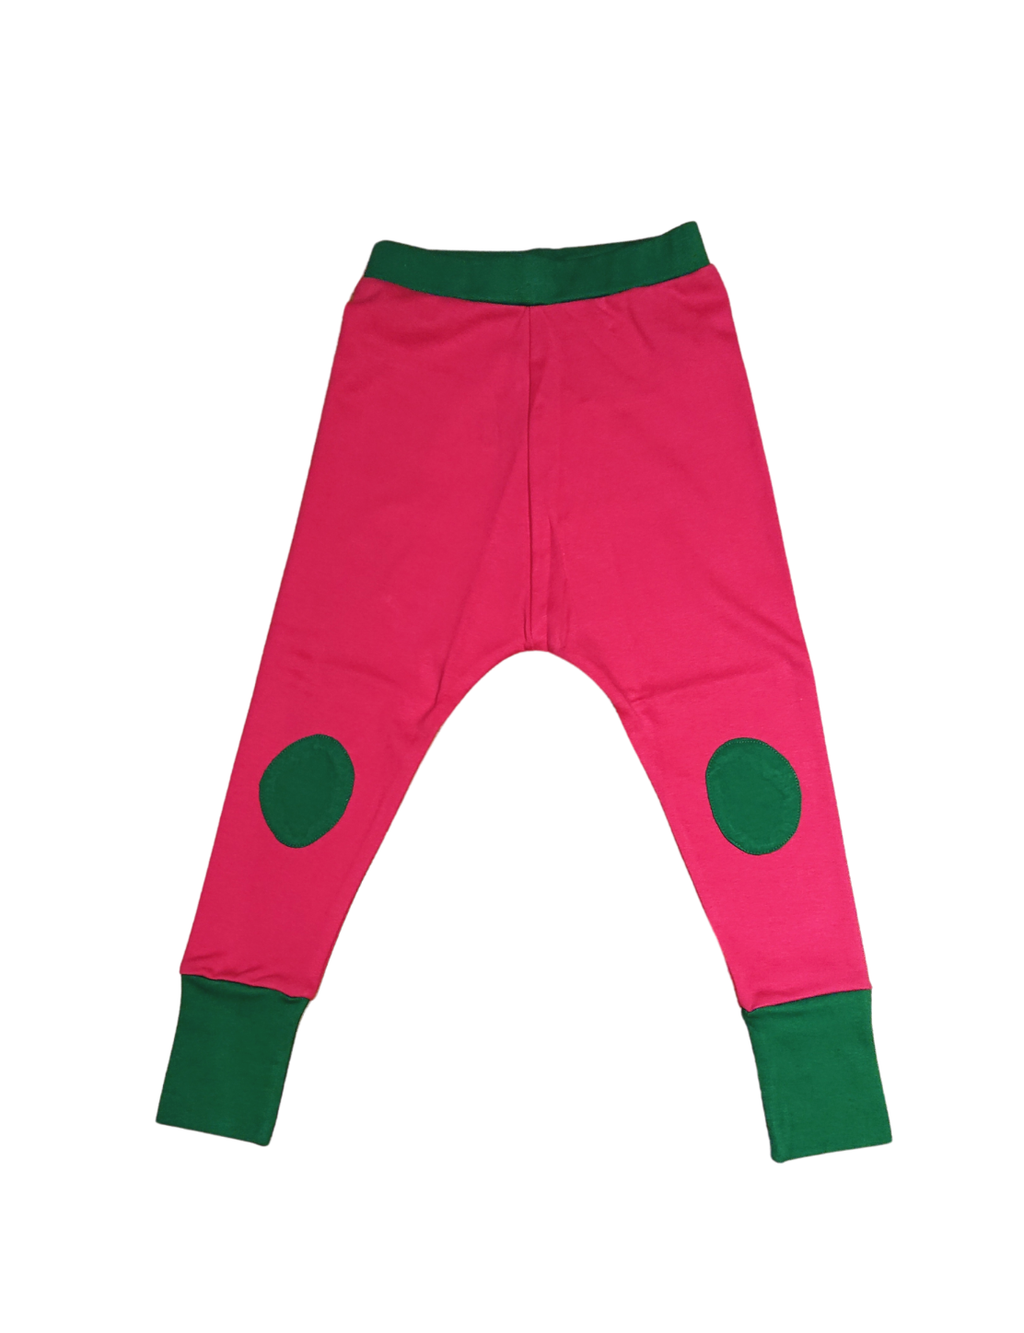 MOROMINI organic cotton joggers with patches PINK/GREEN